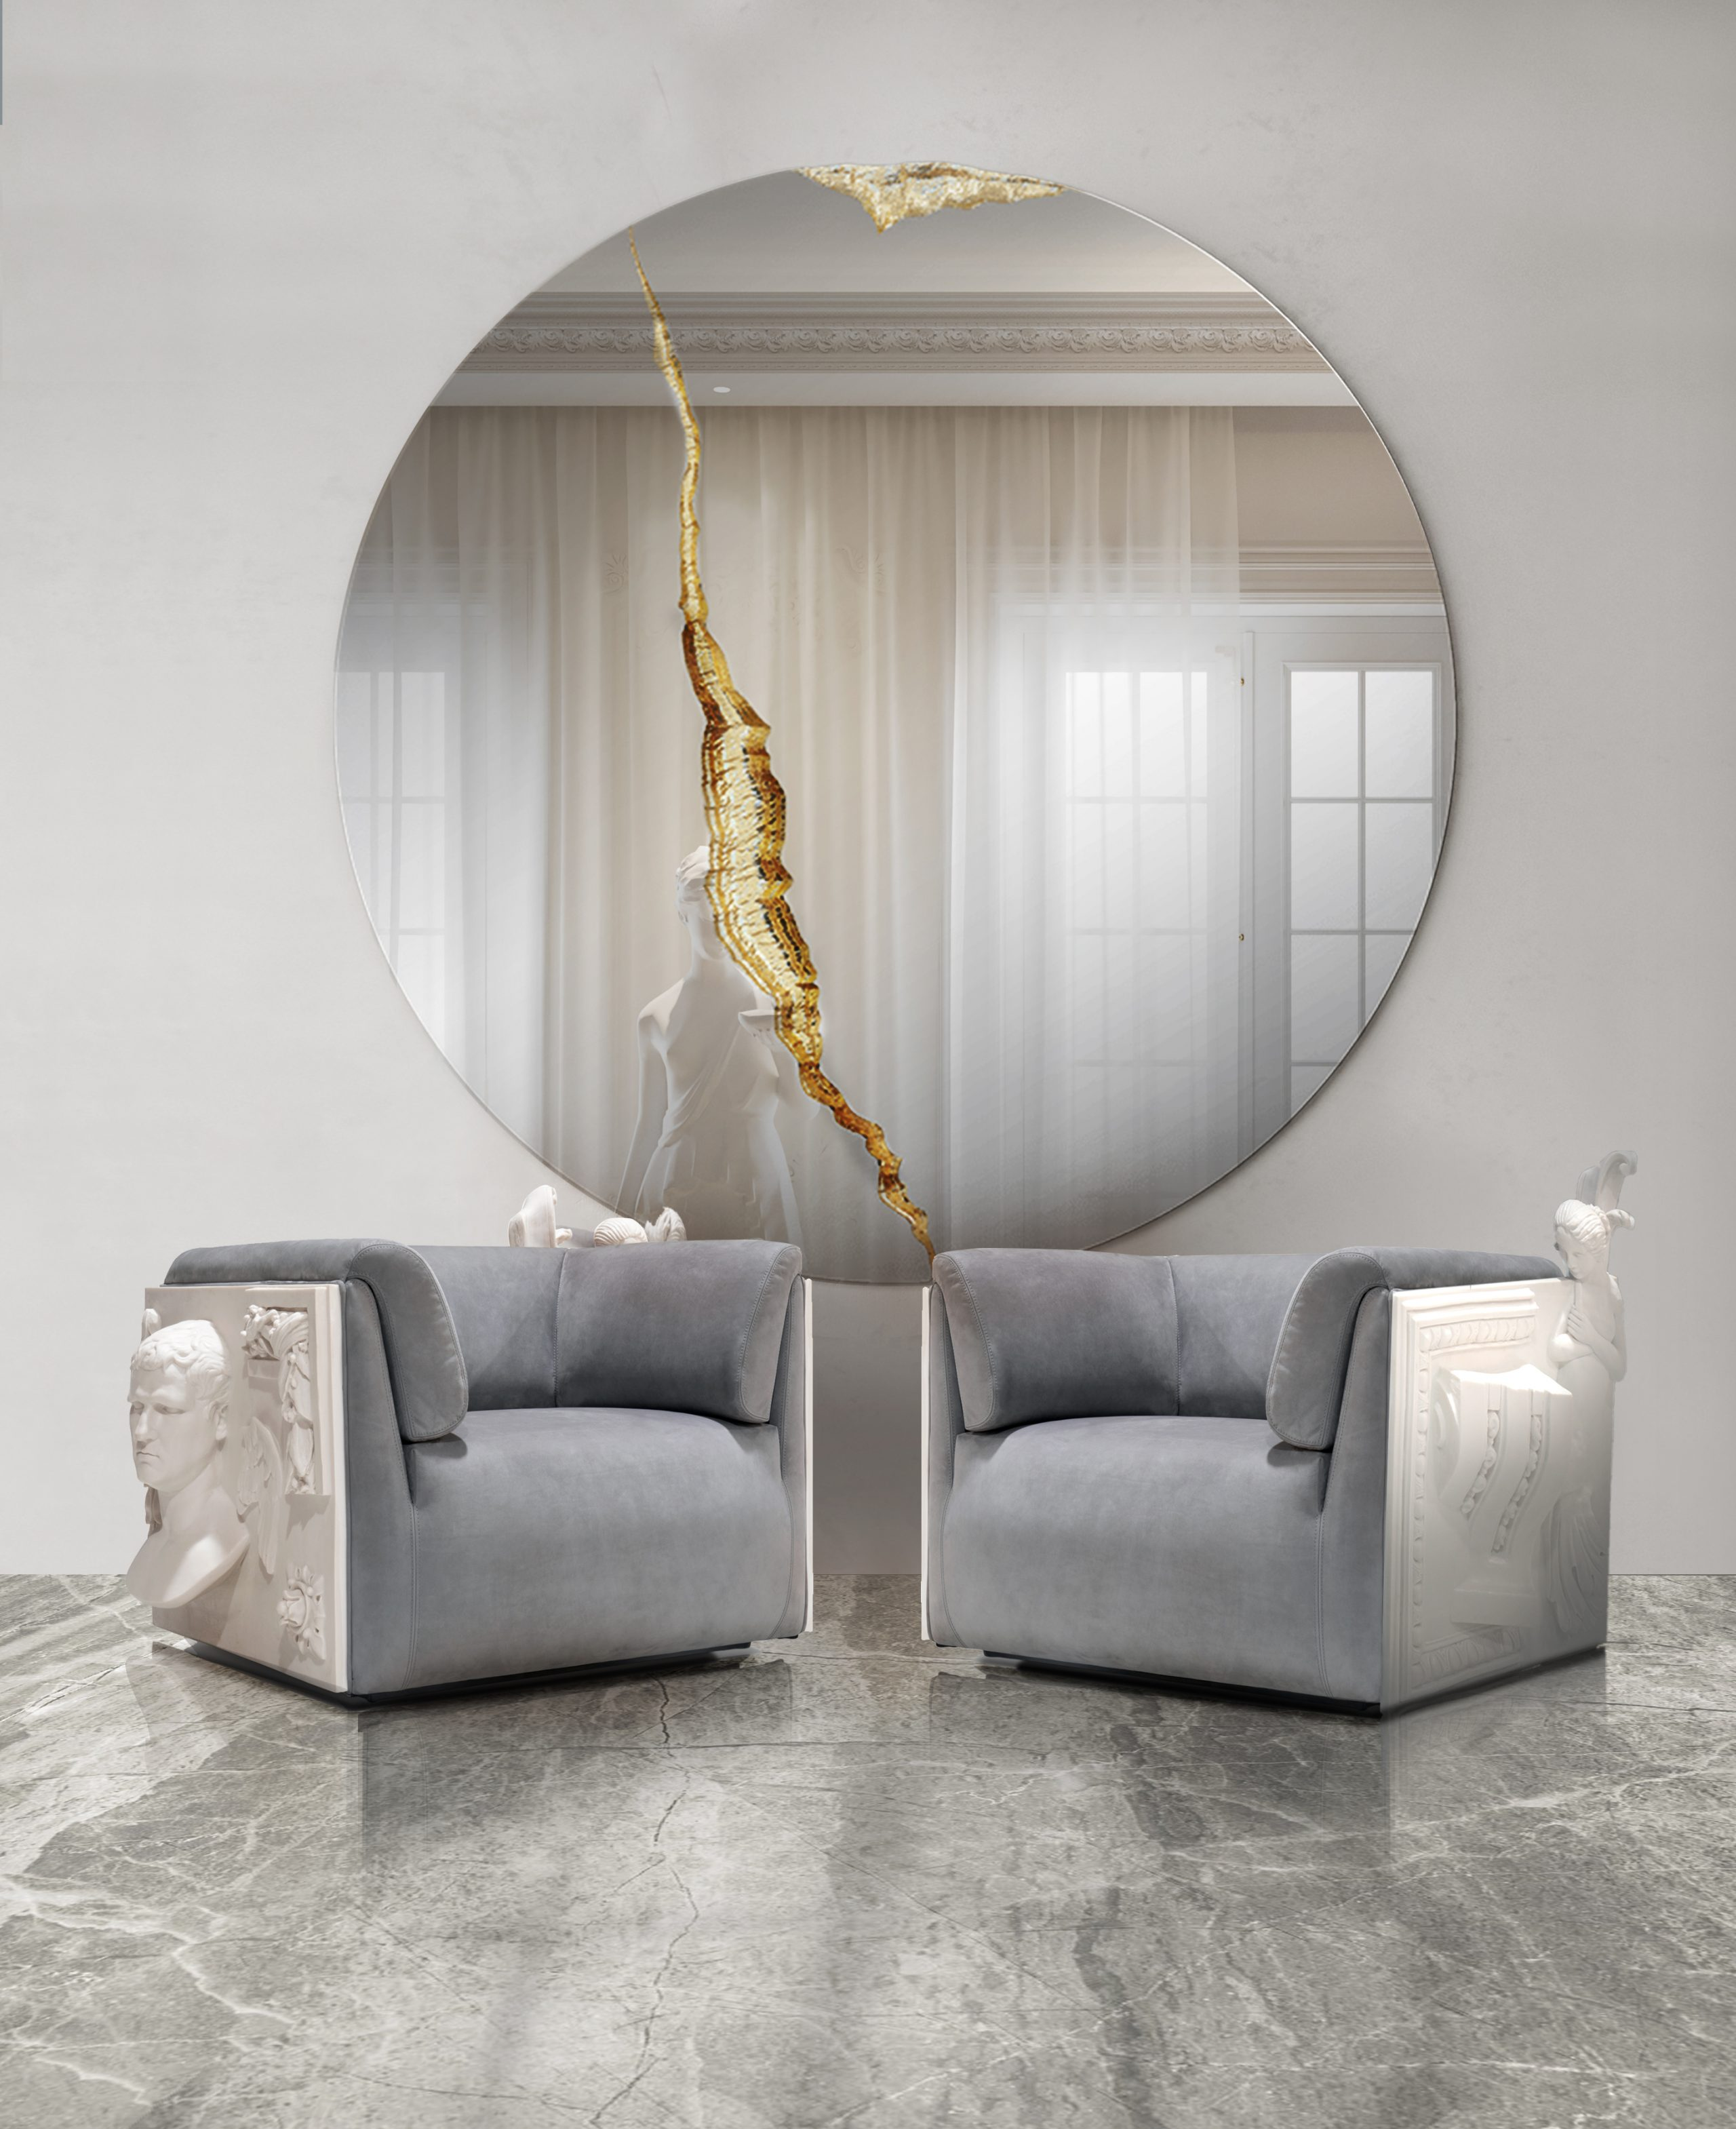 Two modern classic armchairs, living room ambiences